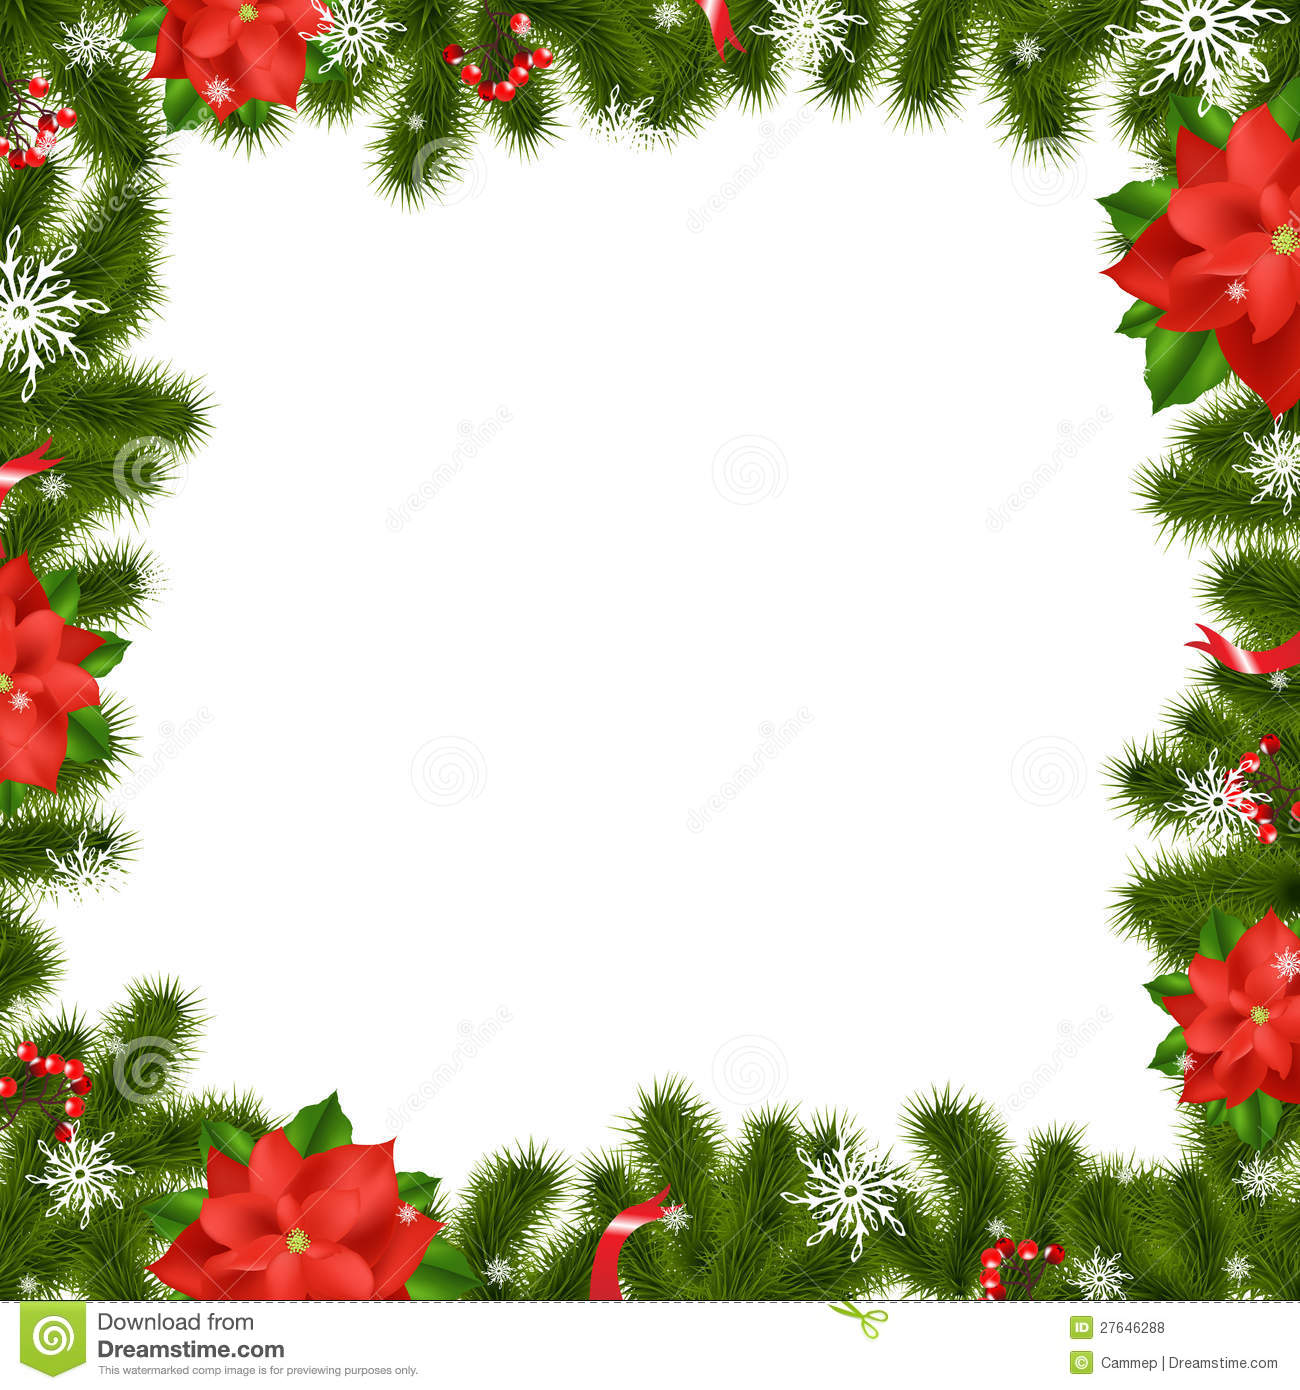 Frame fir tree branches with poinsettia royalty free stock for Poinsettia christmas tree frame